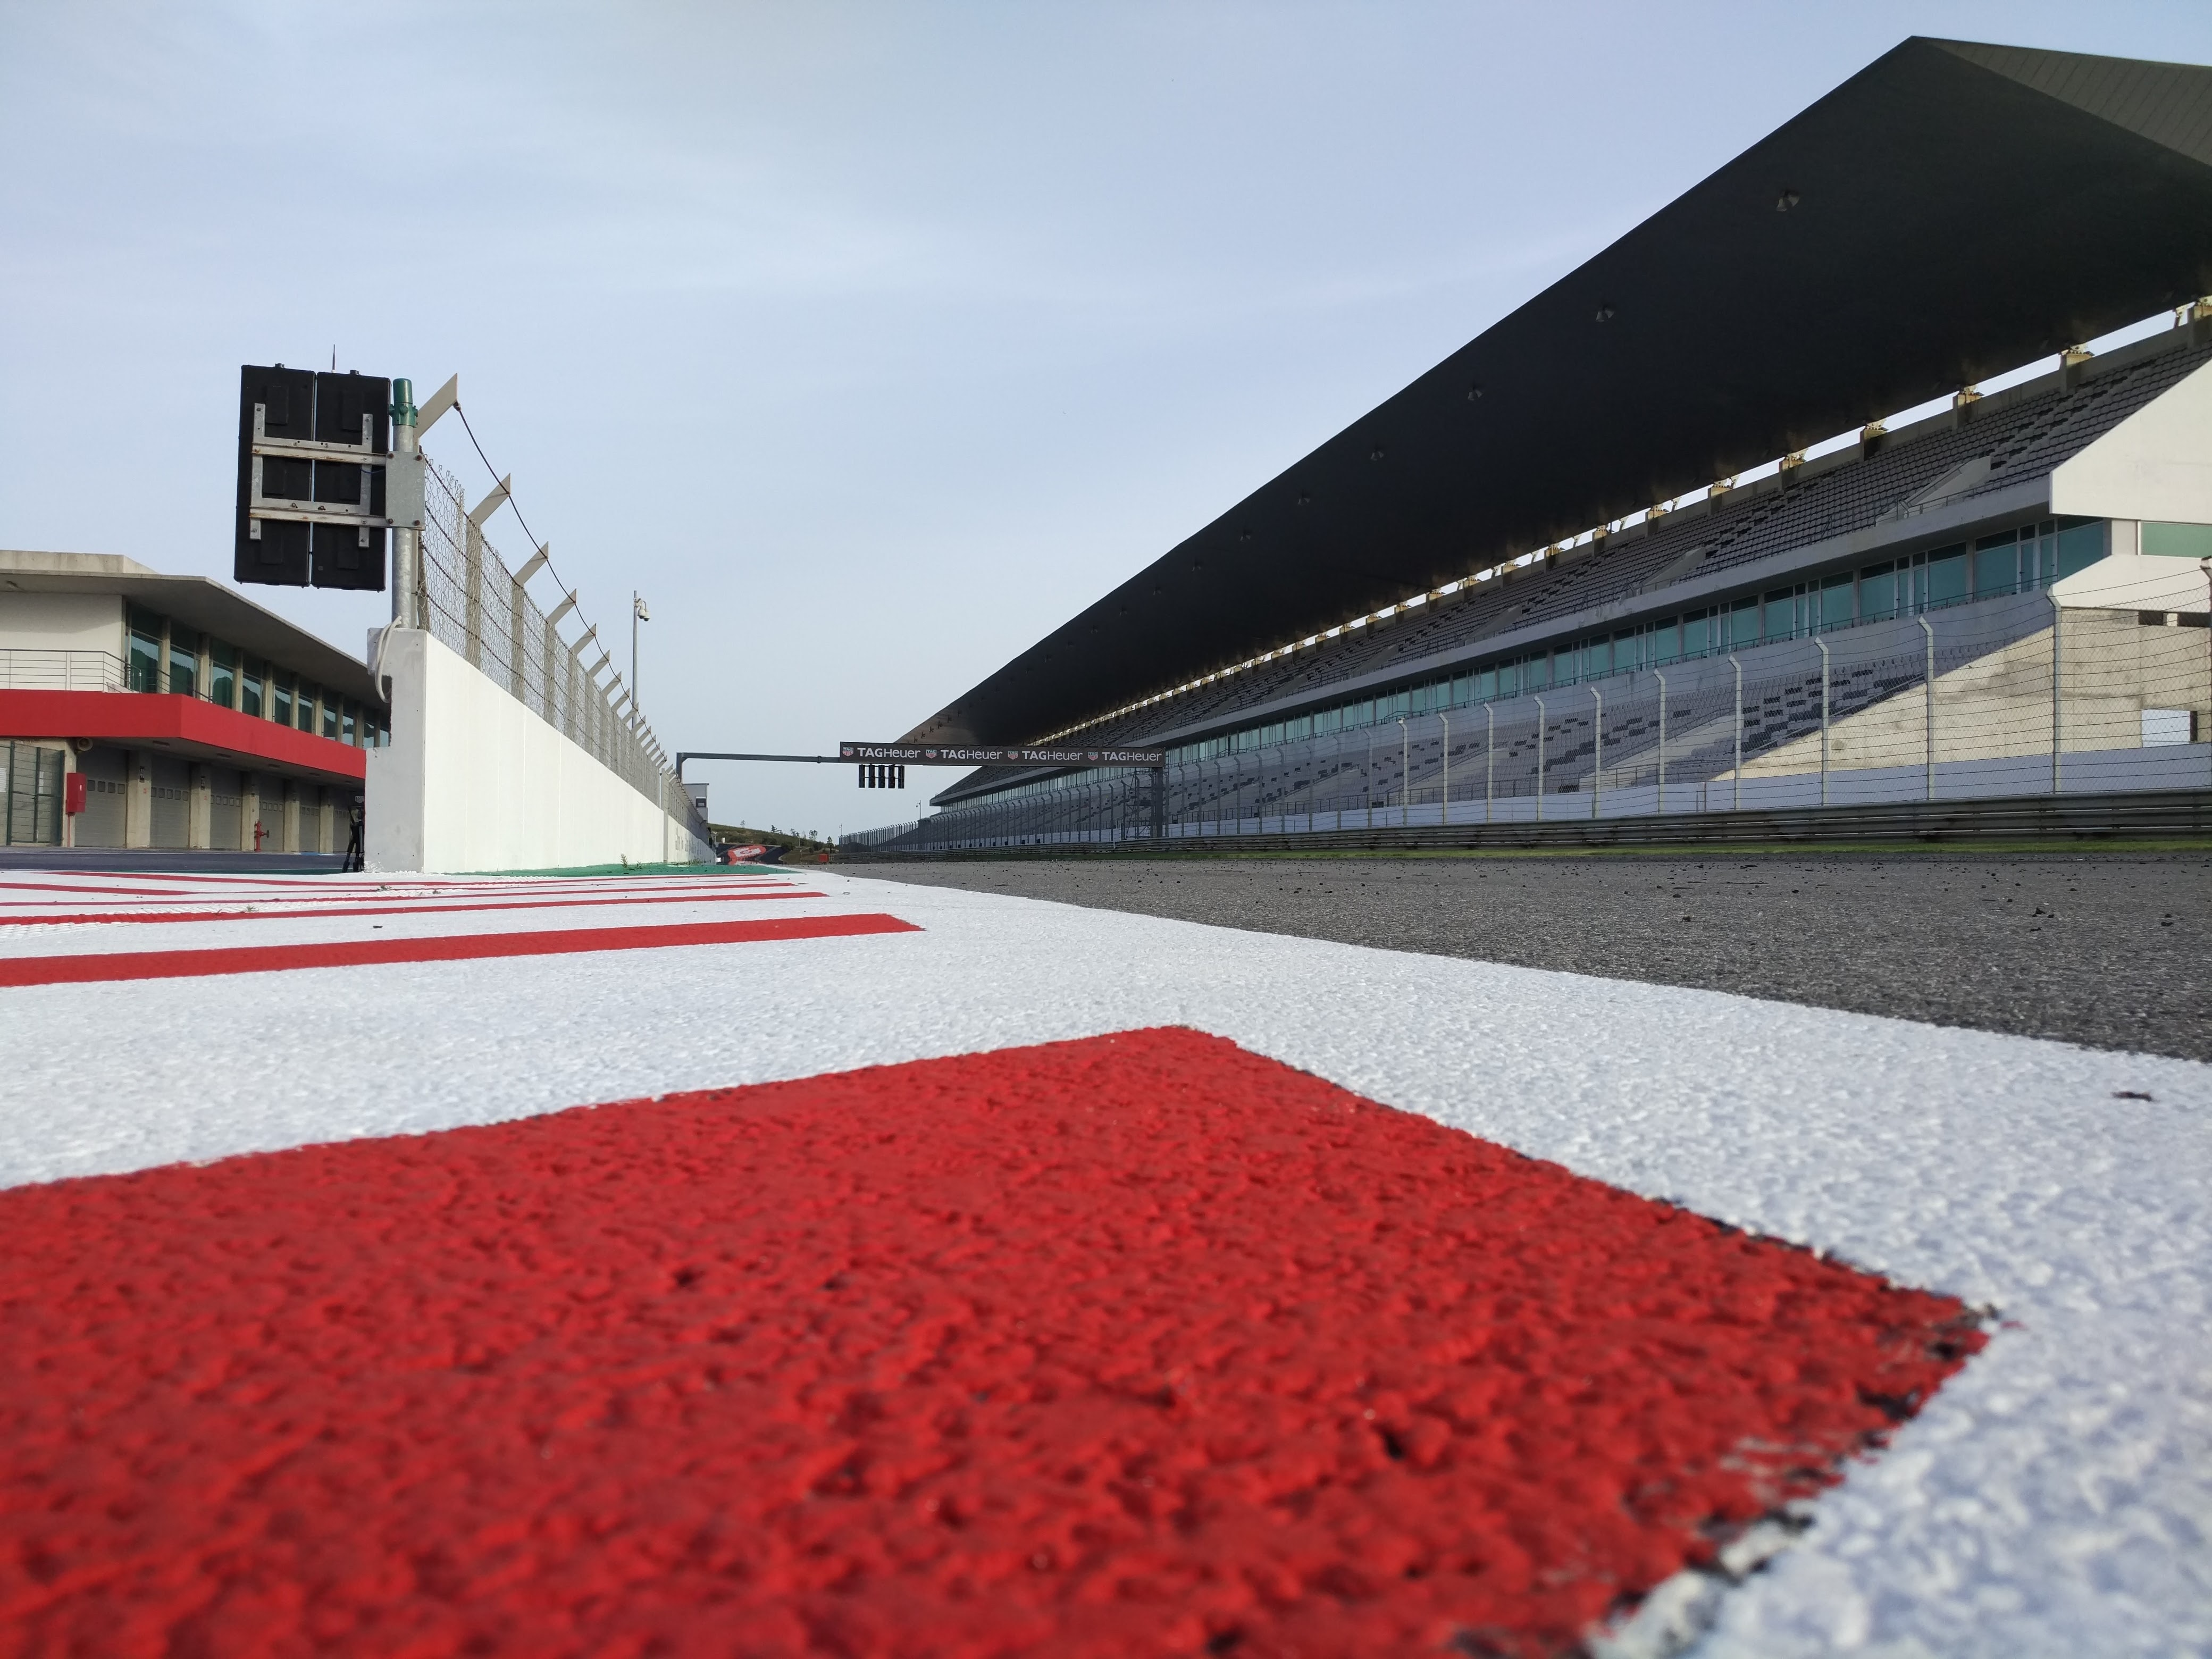 Ground-level view of the race track and the sitting area of the Algarve International Circuit.